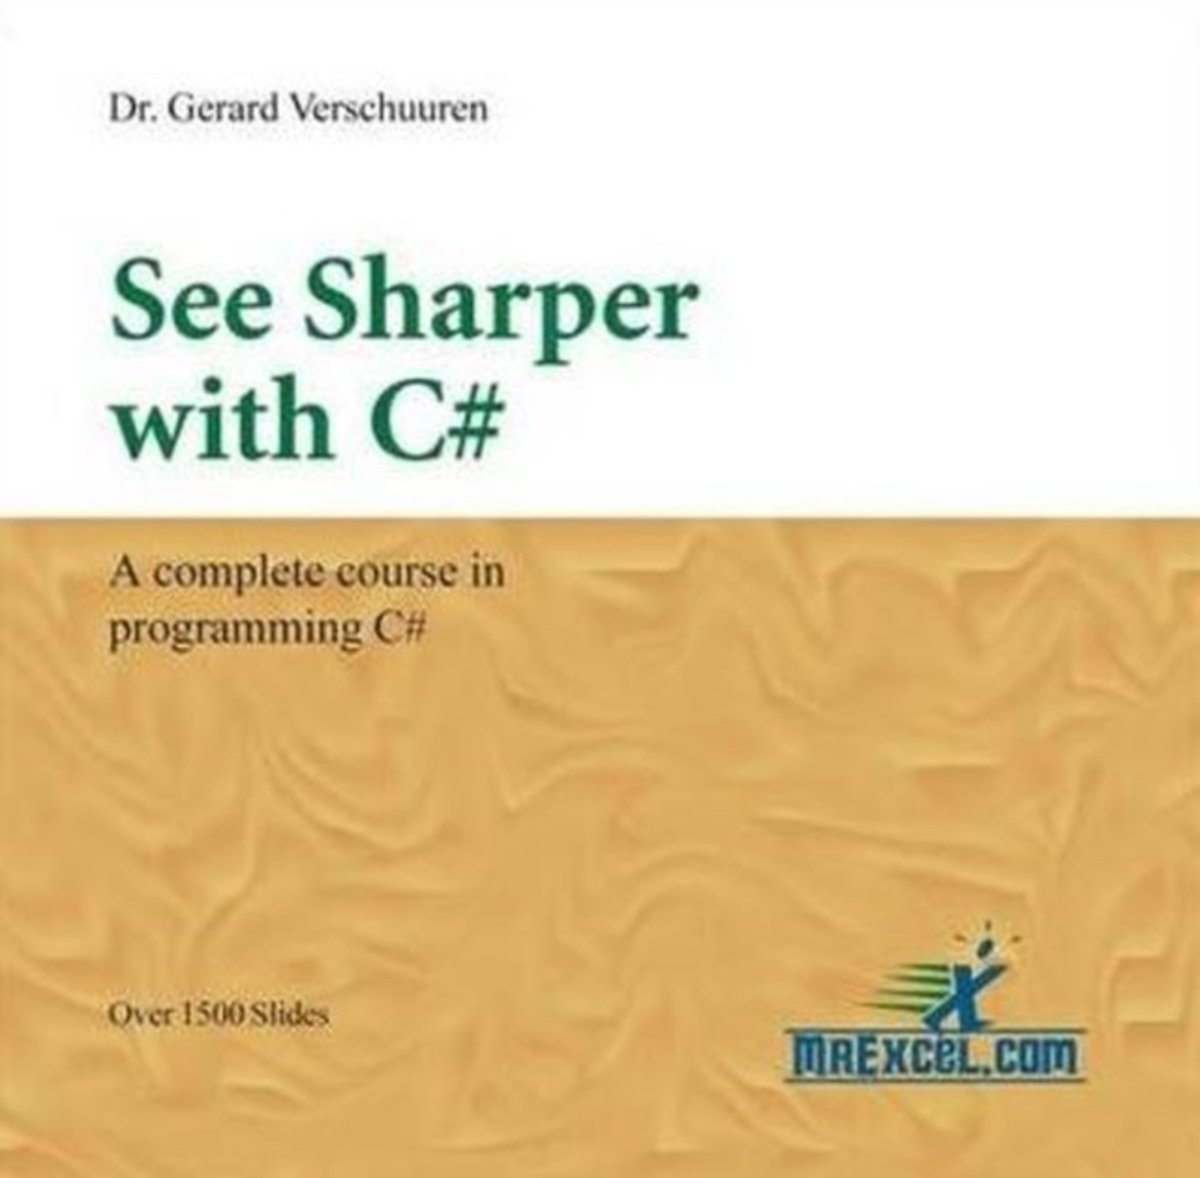 See Sharper with C#